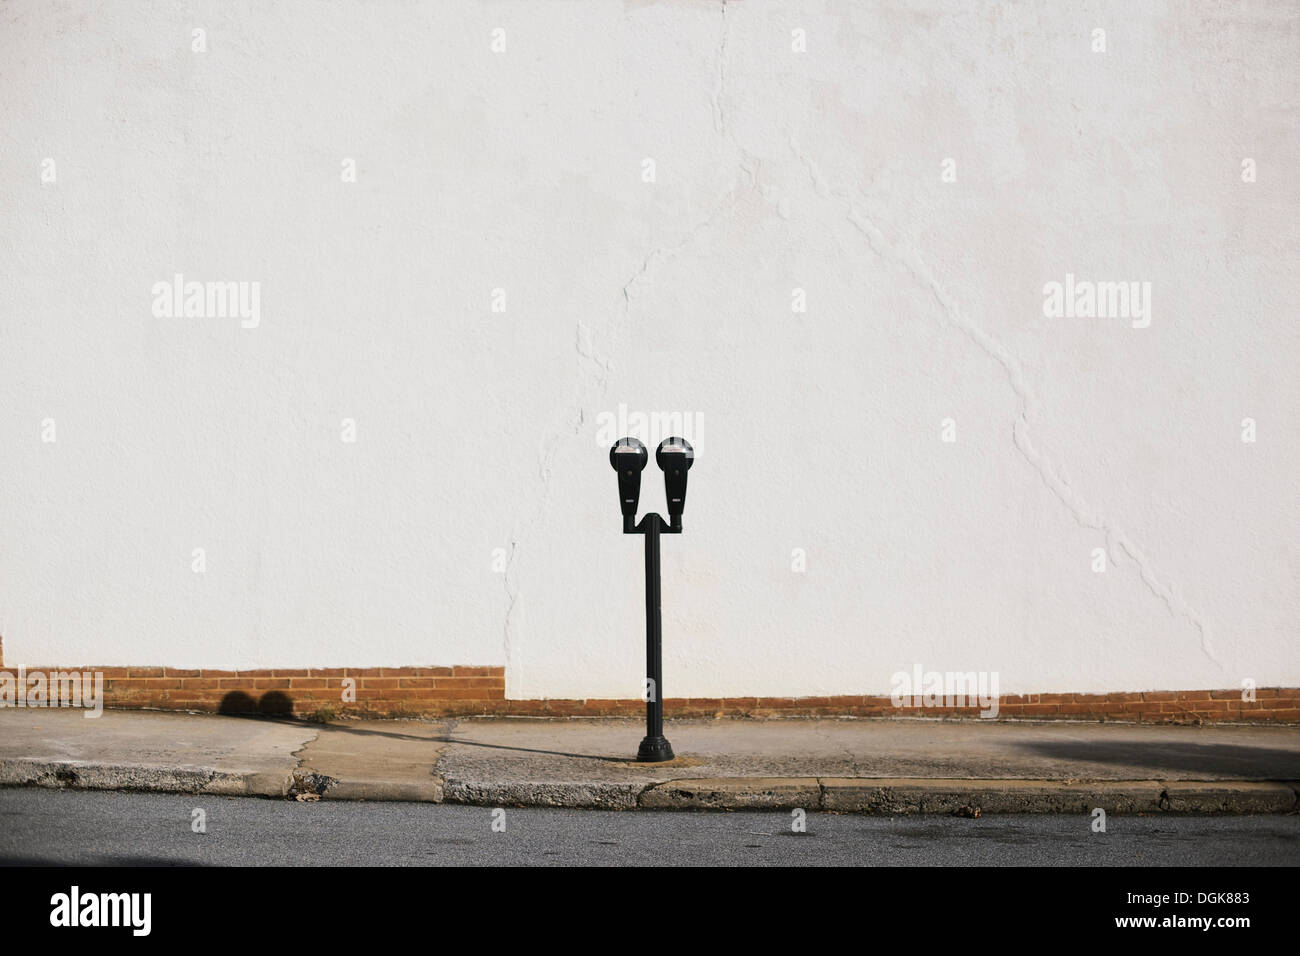 Parking meter on pavement - Stock Image